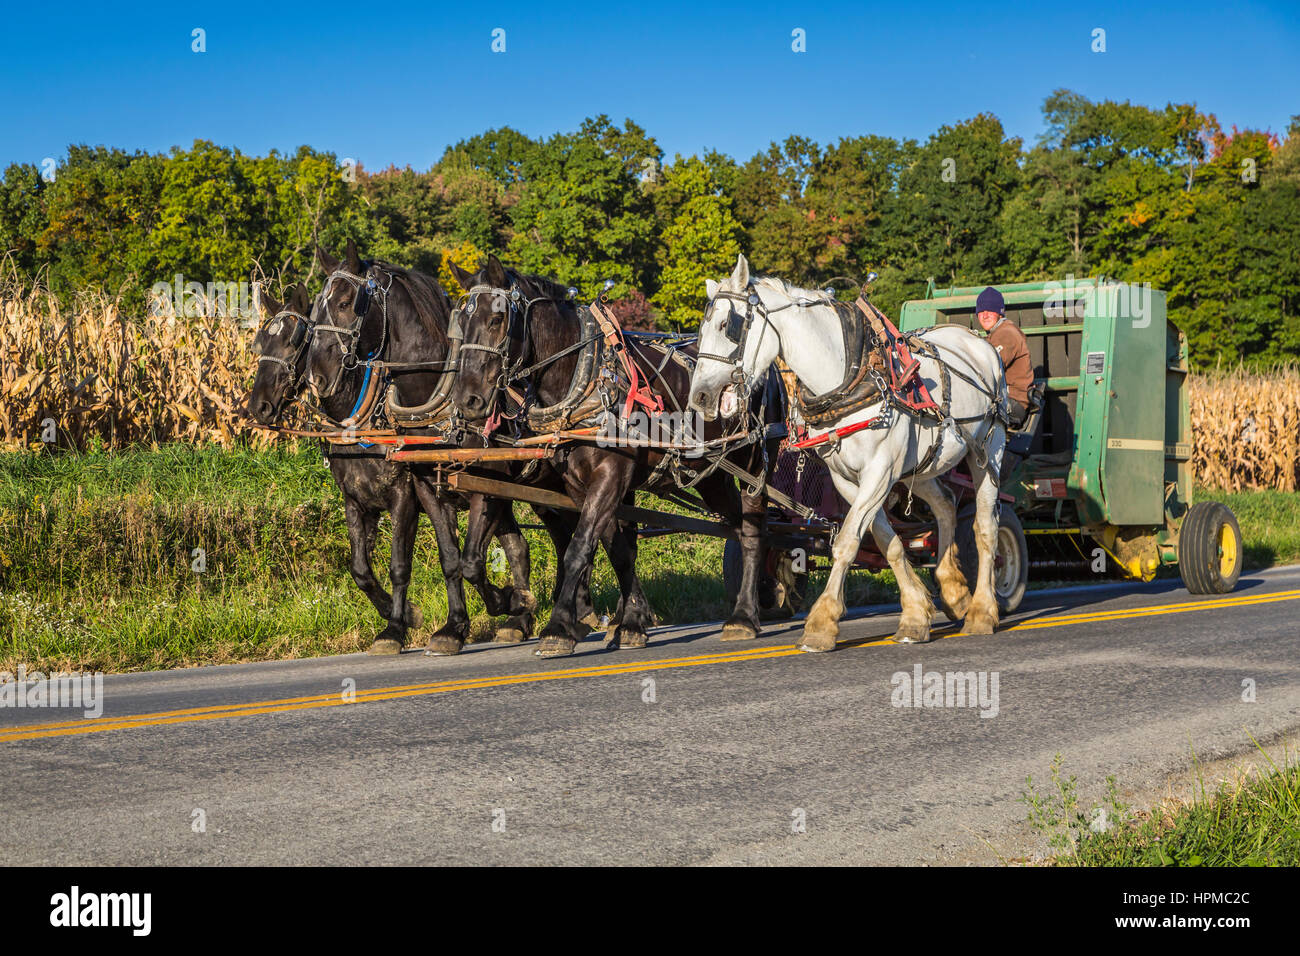 A horse drawn hay baler along the roadway in the countryside near Kidron, Ohio, USA. - Stock Image